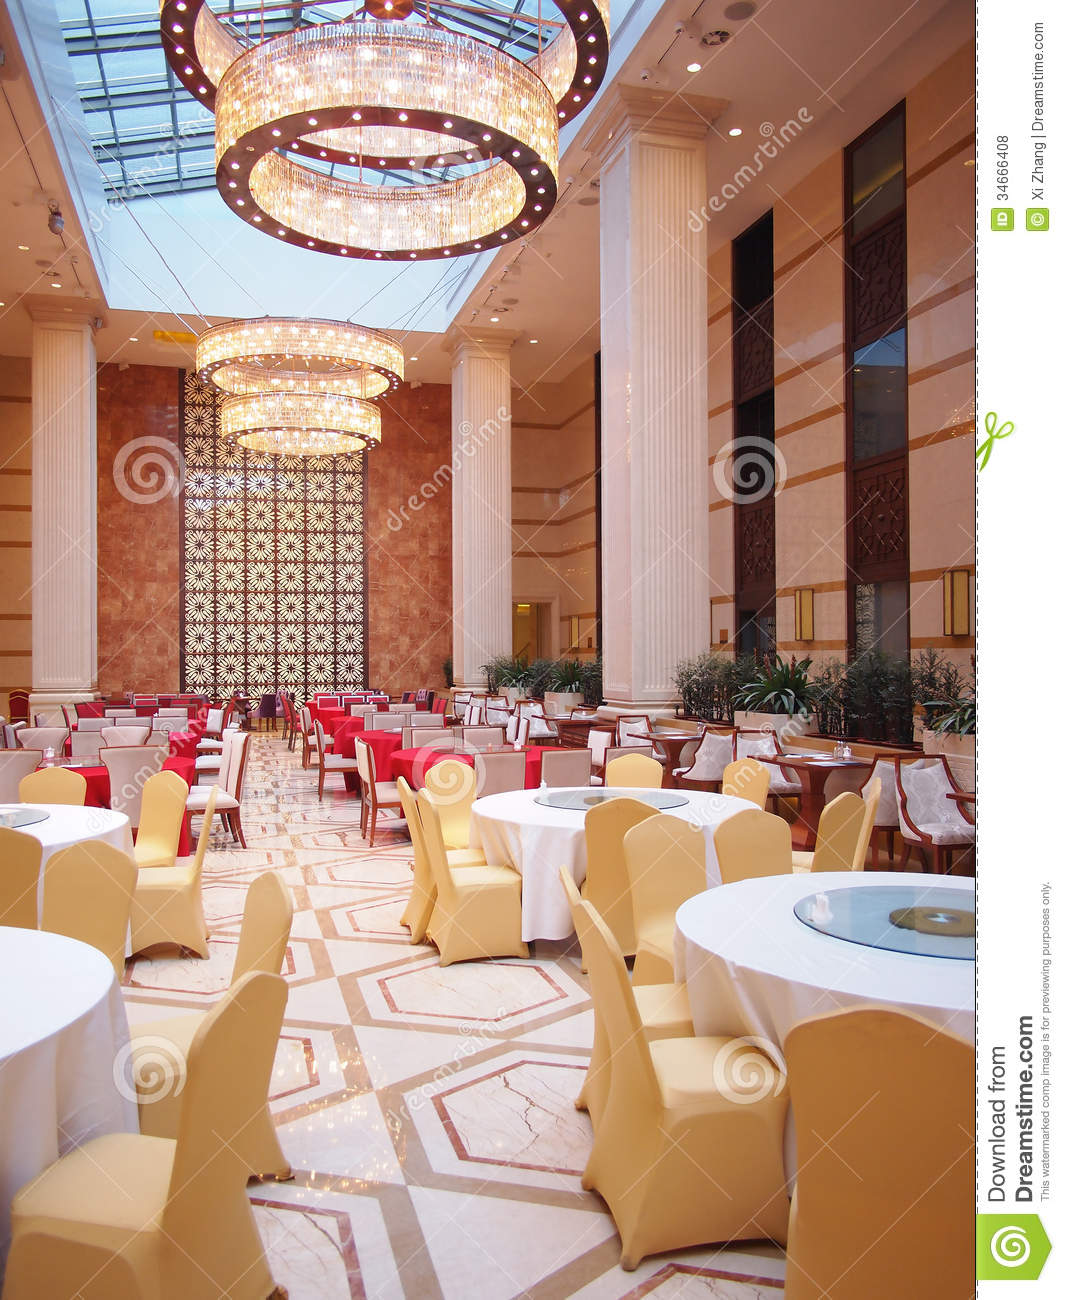 Dining Hall: Hotel Dining Hall Stock Photo. Image Of Palm, Plants